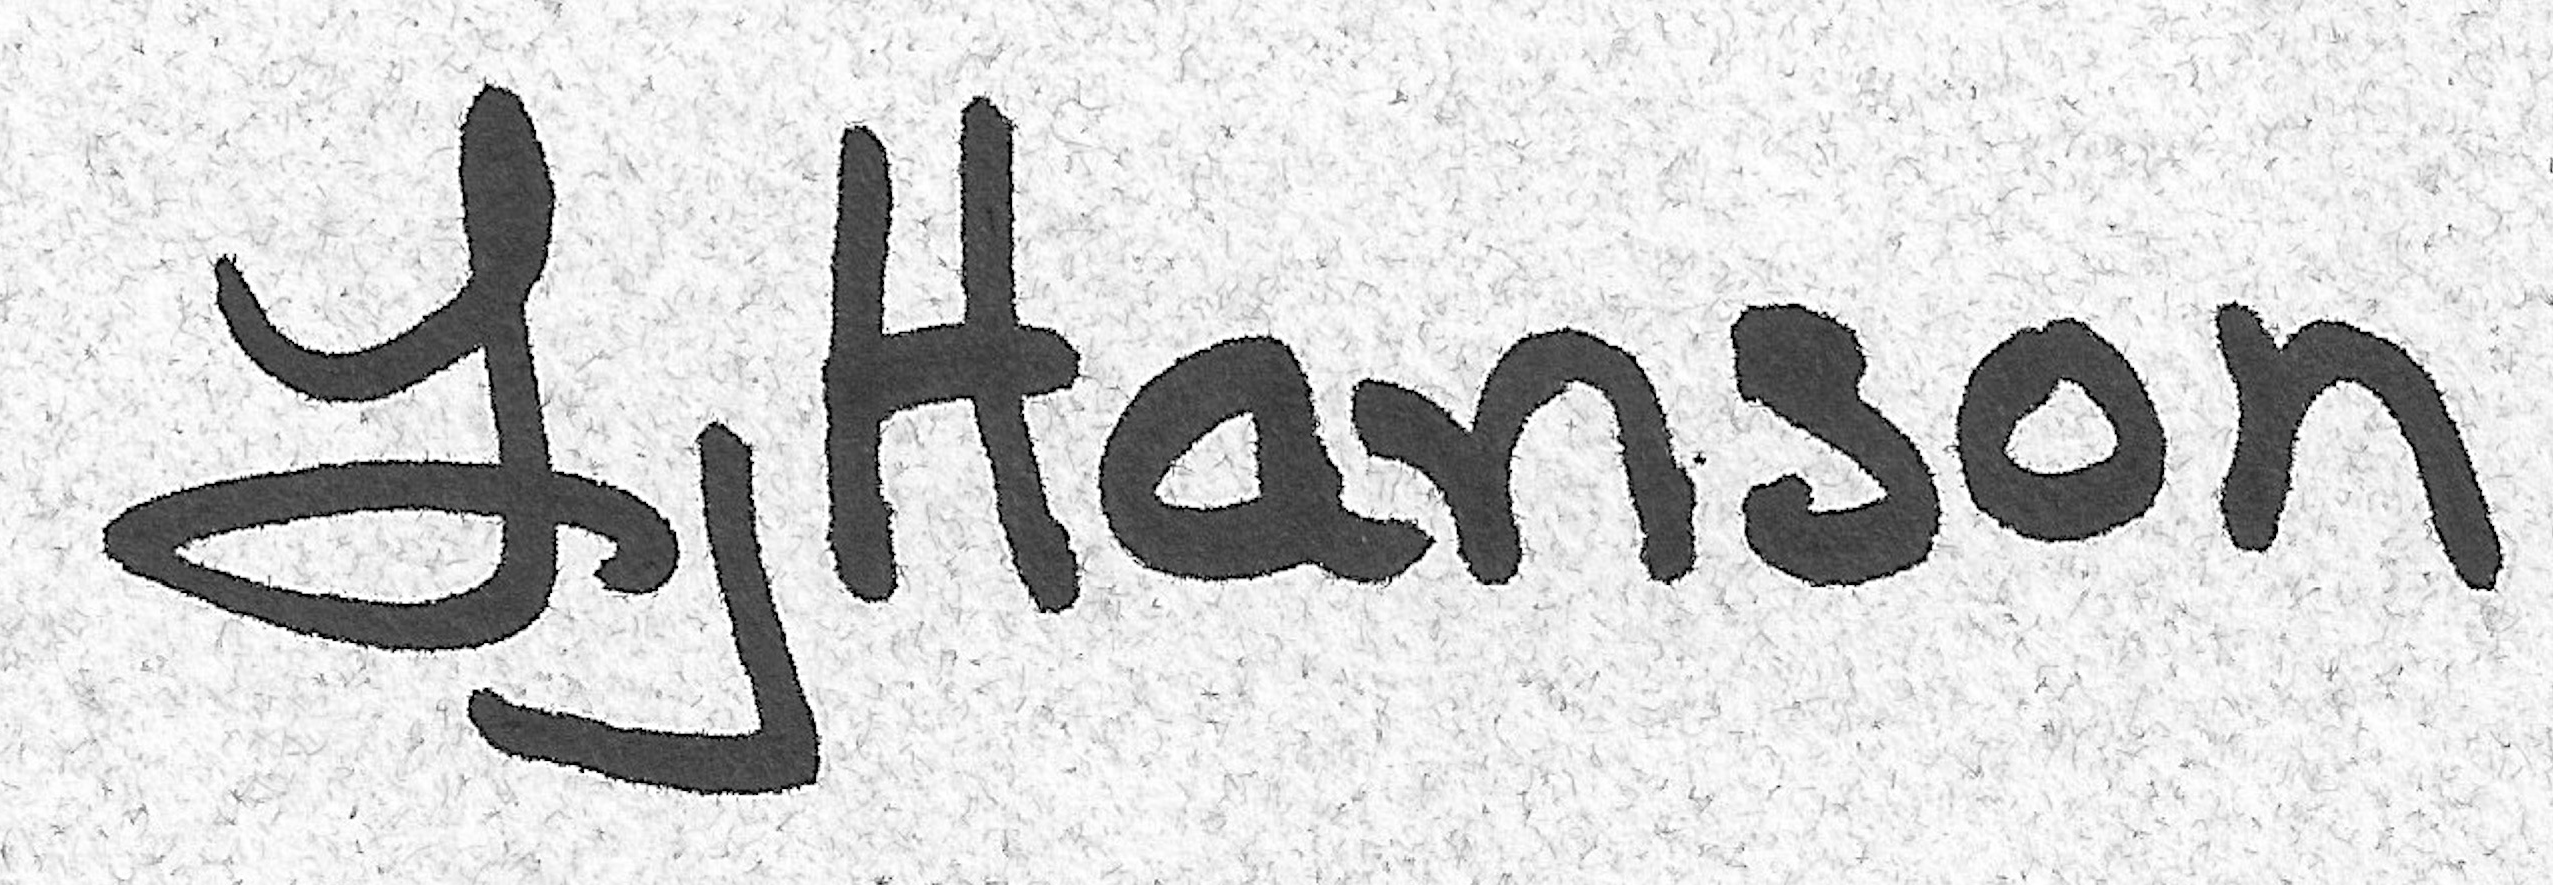 Laurel Hanson's Signature